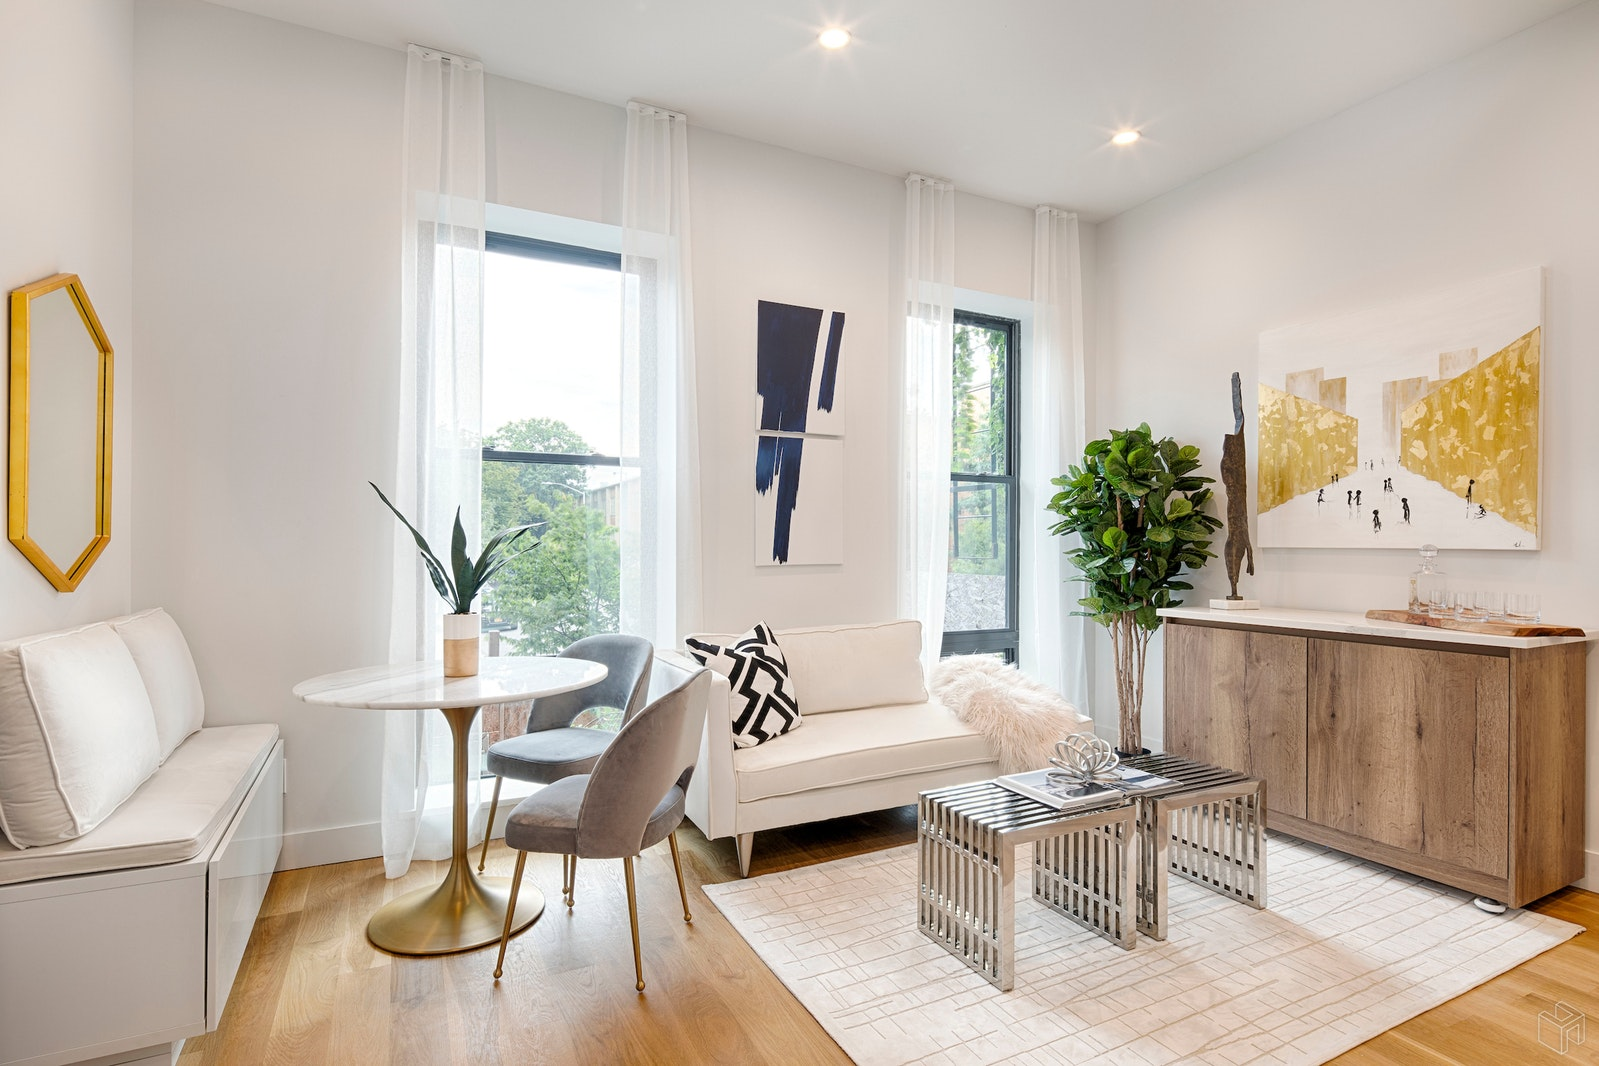 187 Gates Avenue 3, Clinton Hill, Brooklyn, NY, 11238, $975,000, Sold Property, Halstead Real Estate, Photo 6